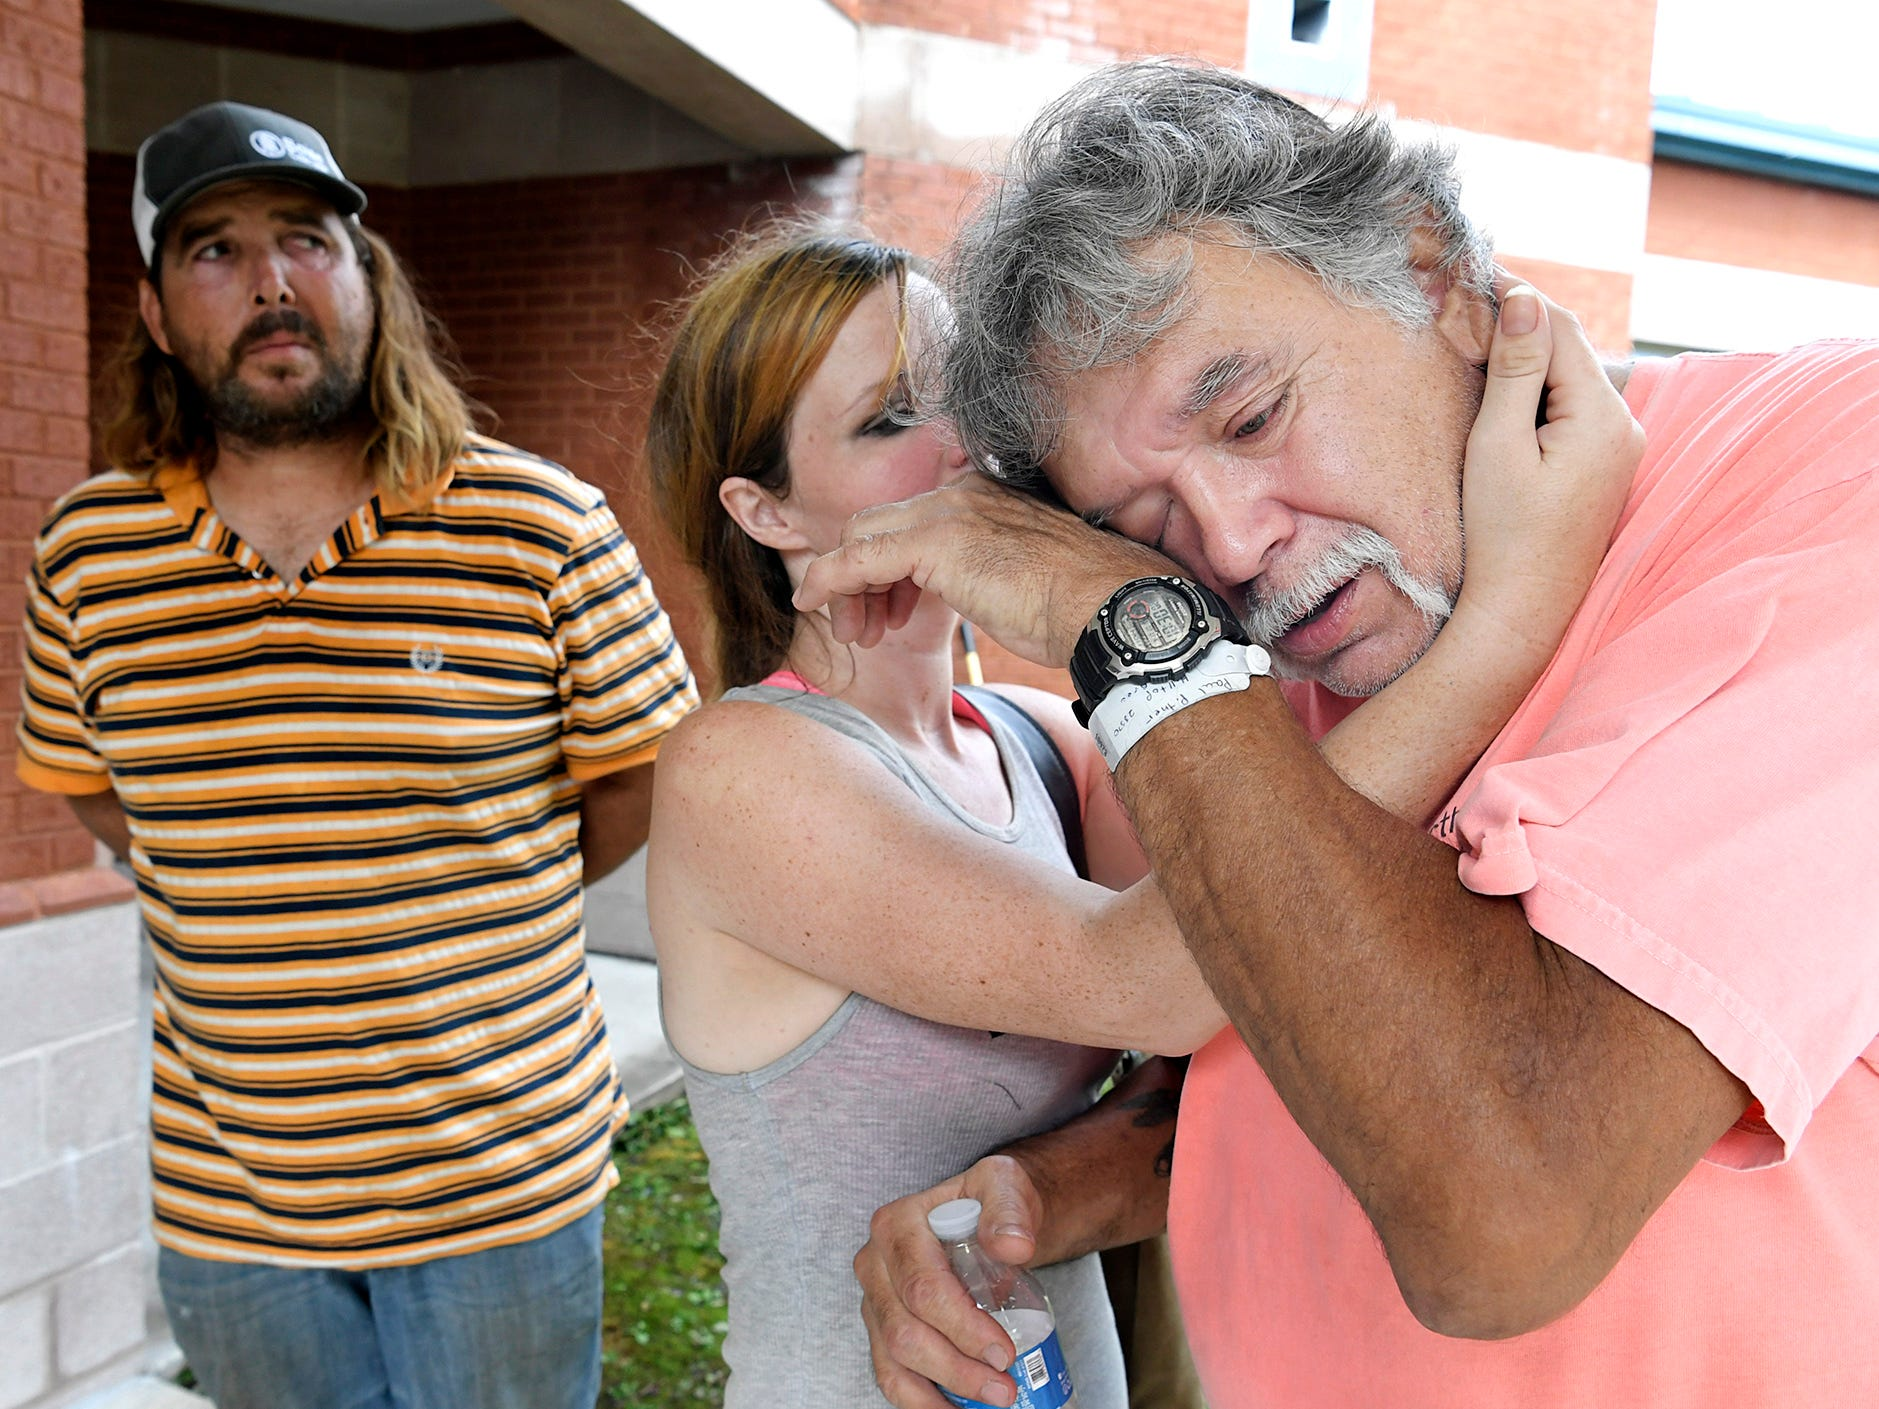 Christian Raup hugs her father-in-law, Paul Pinter, as he cries while recounting how the National Guard rescued him from floodwater last Friday.  Pinter is staying at a shelter at Newport Middle School. PinterÕs son, Mugsy Raup, stands with his wife and father outside the shelter on Monday, Sept. 17, 2018.